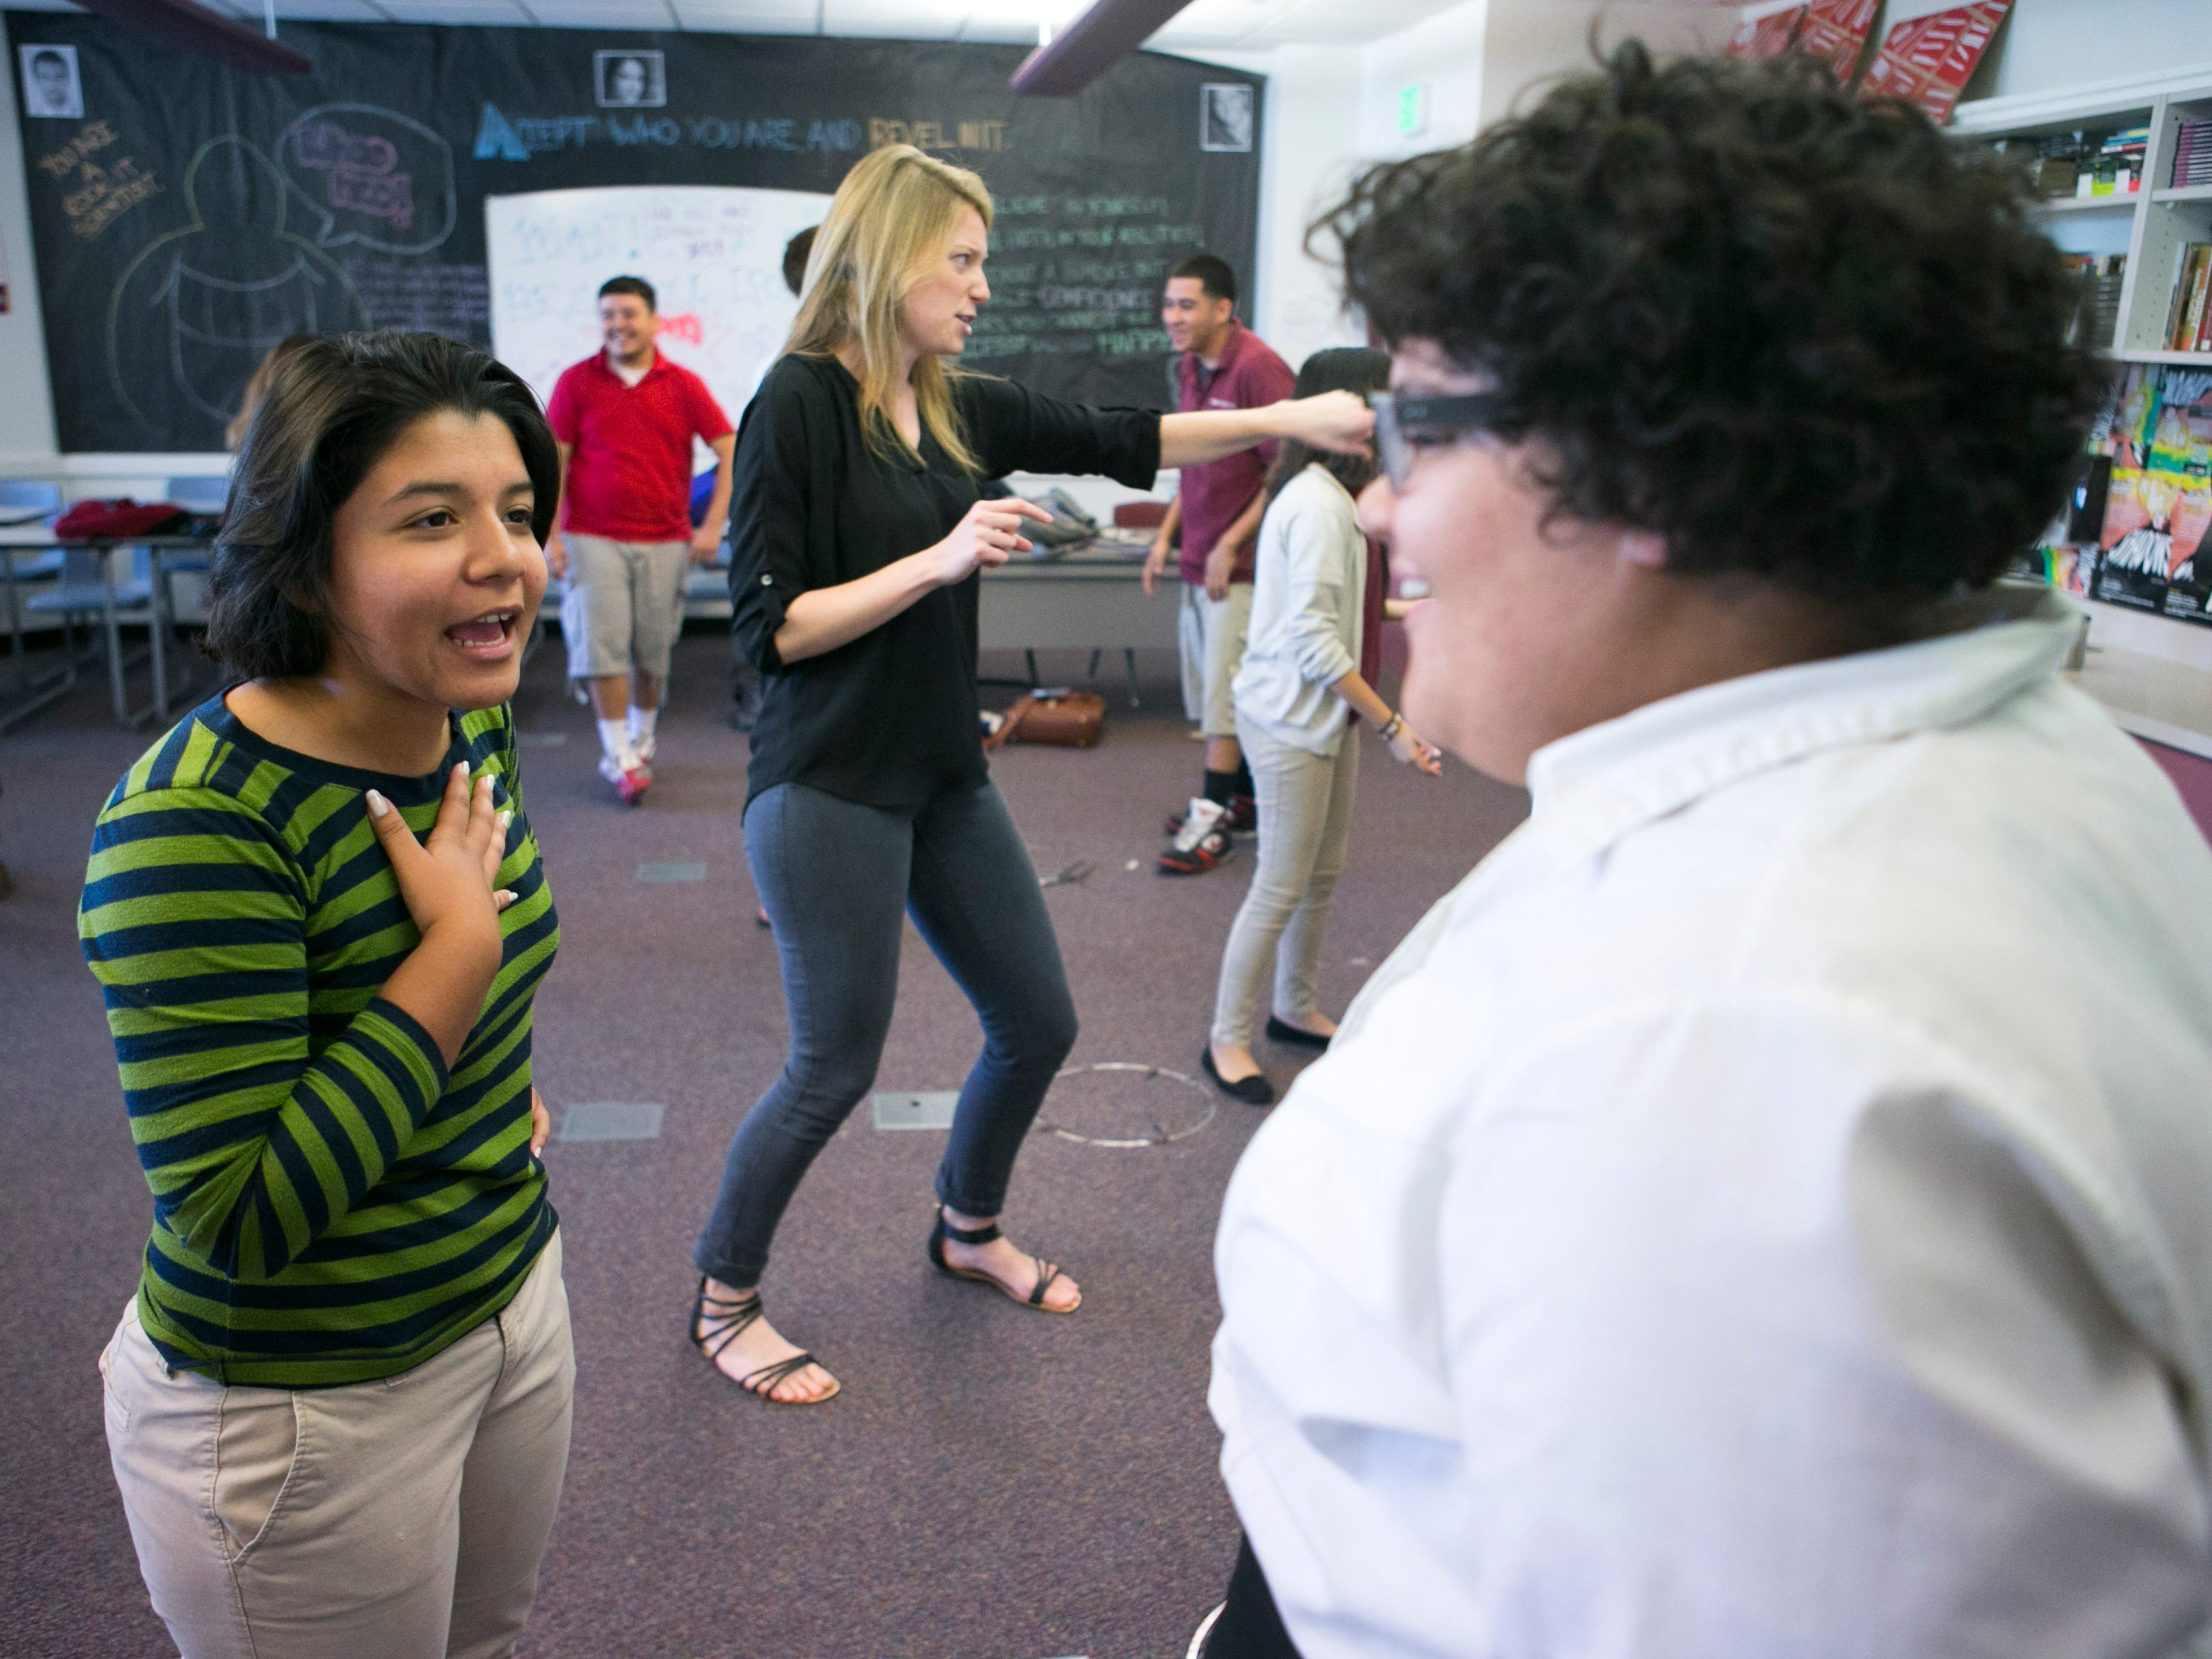 ASU Preparatory Academy senior Donna Flores (left), 18,  does an acting exercise with junior Caelyn Burns, 17, during a drama class at ASU Preparatory Academy in Phoenix on May 26, 2015.